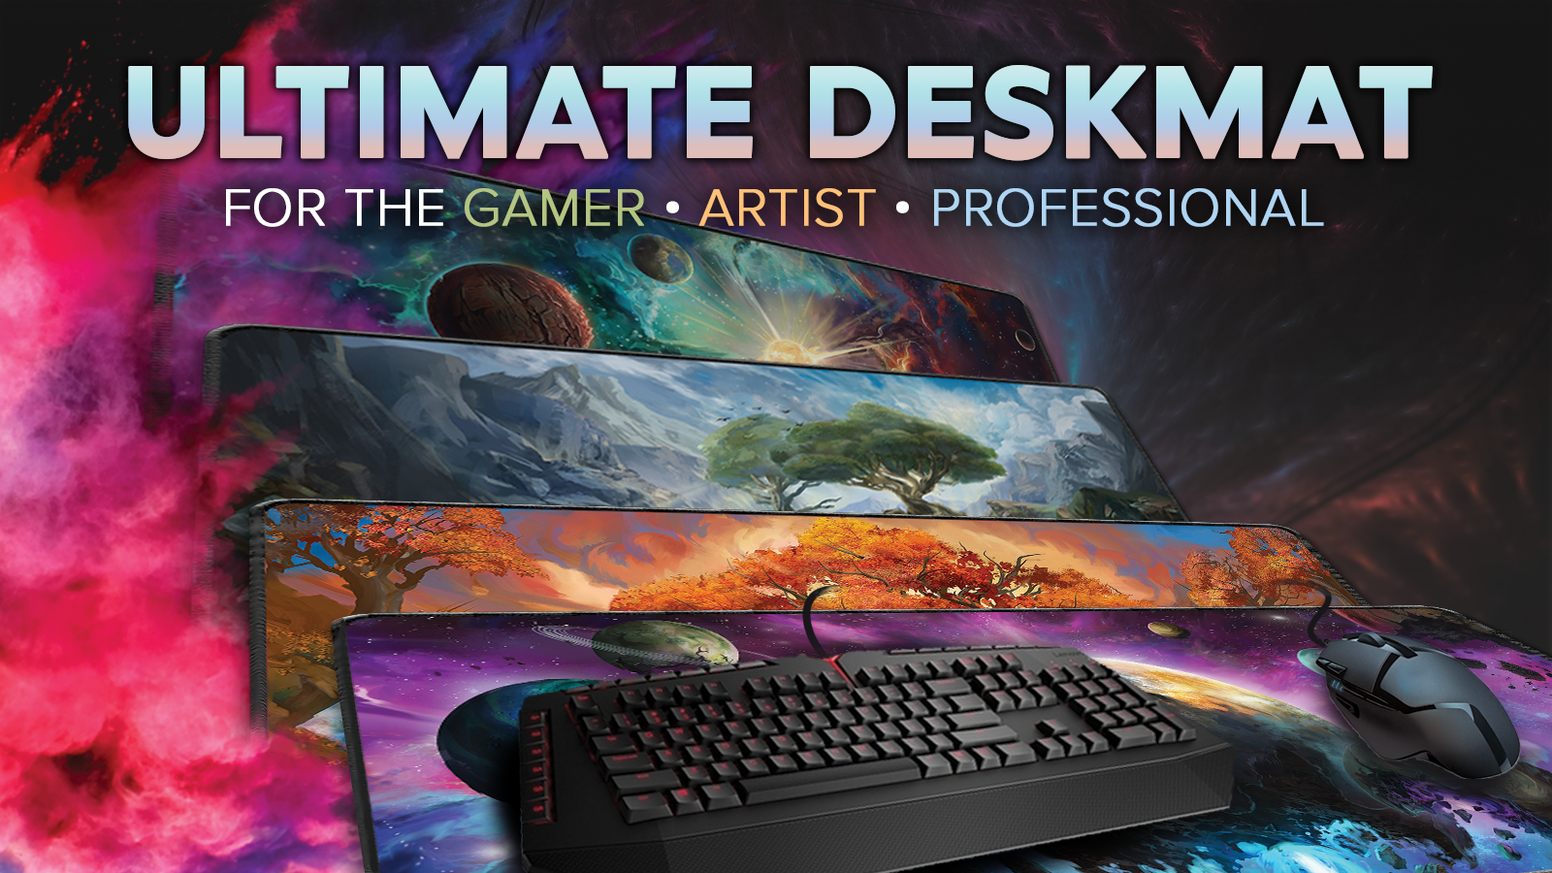 Treat your mouse and keyboard to a unique deskmat with high endurance polyester and stitched edges that will last you a lifetime.